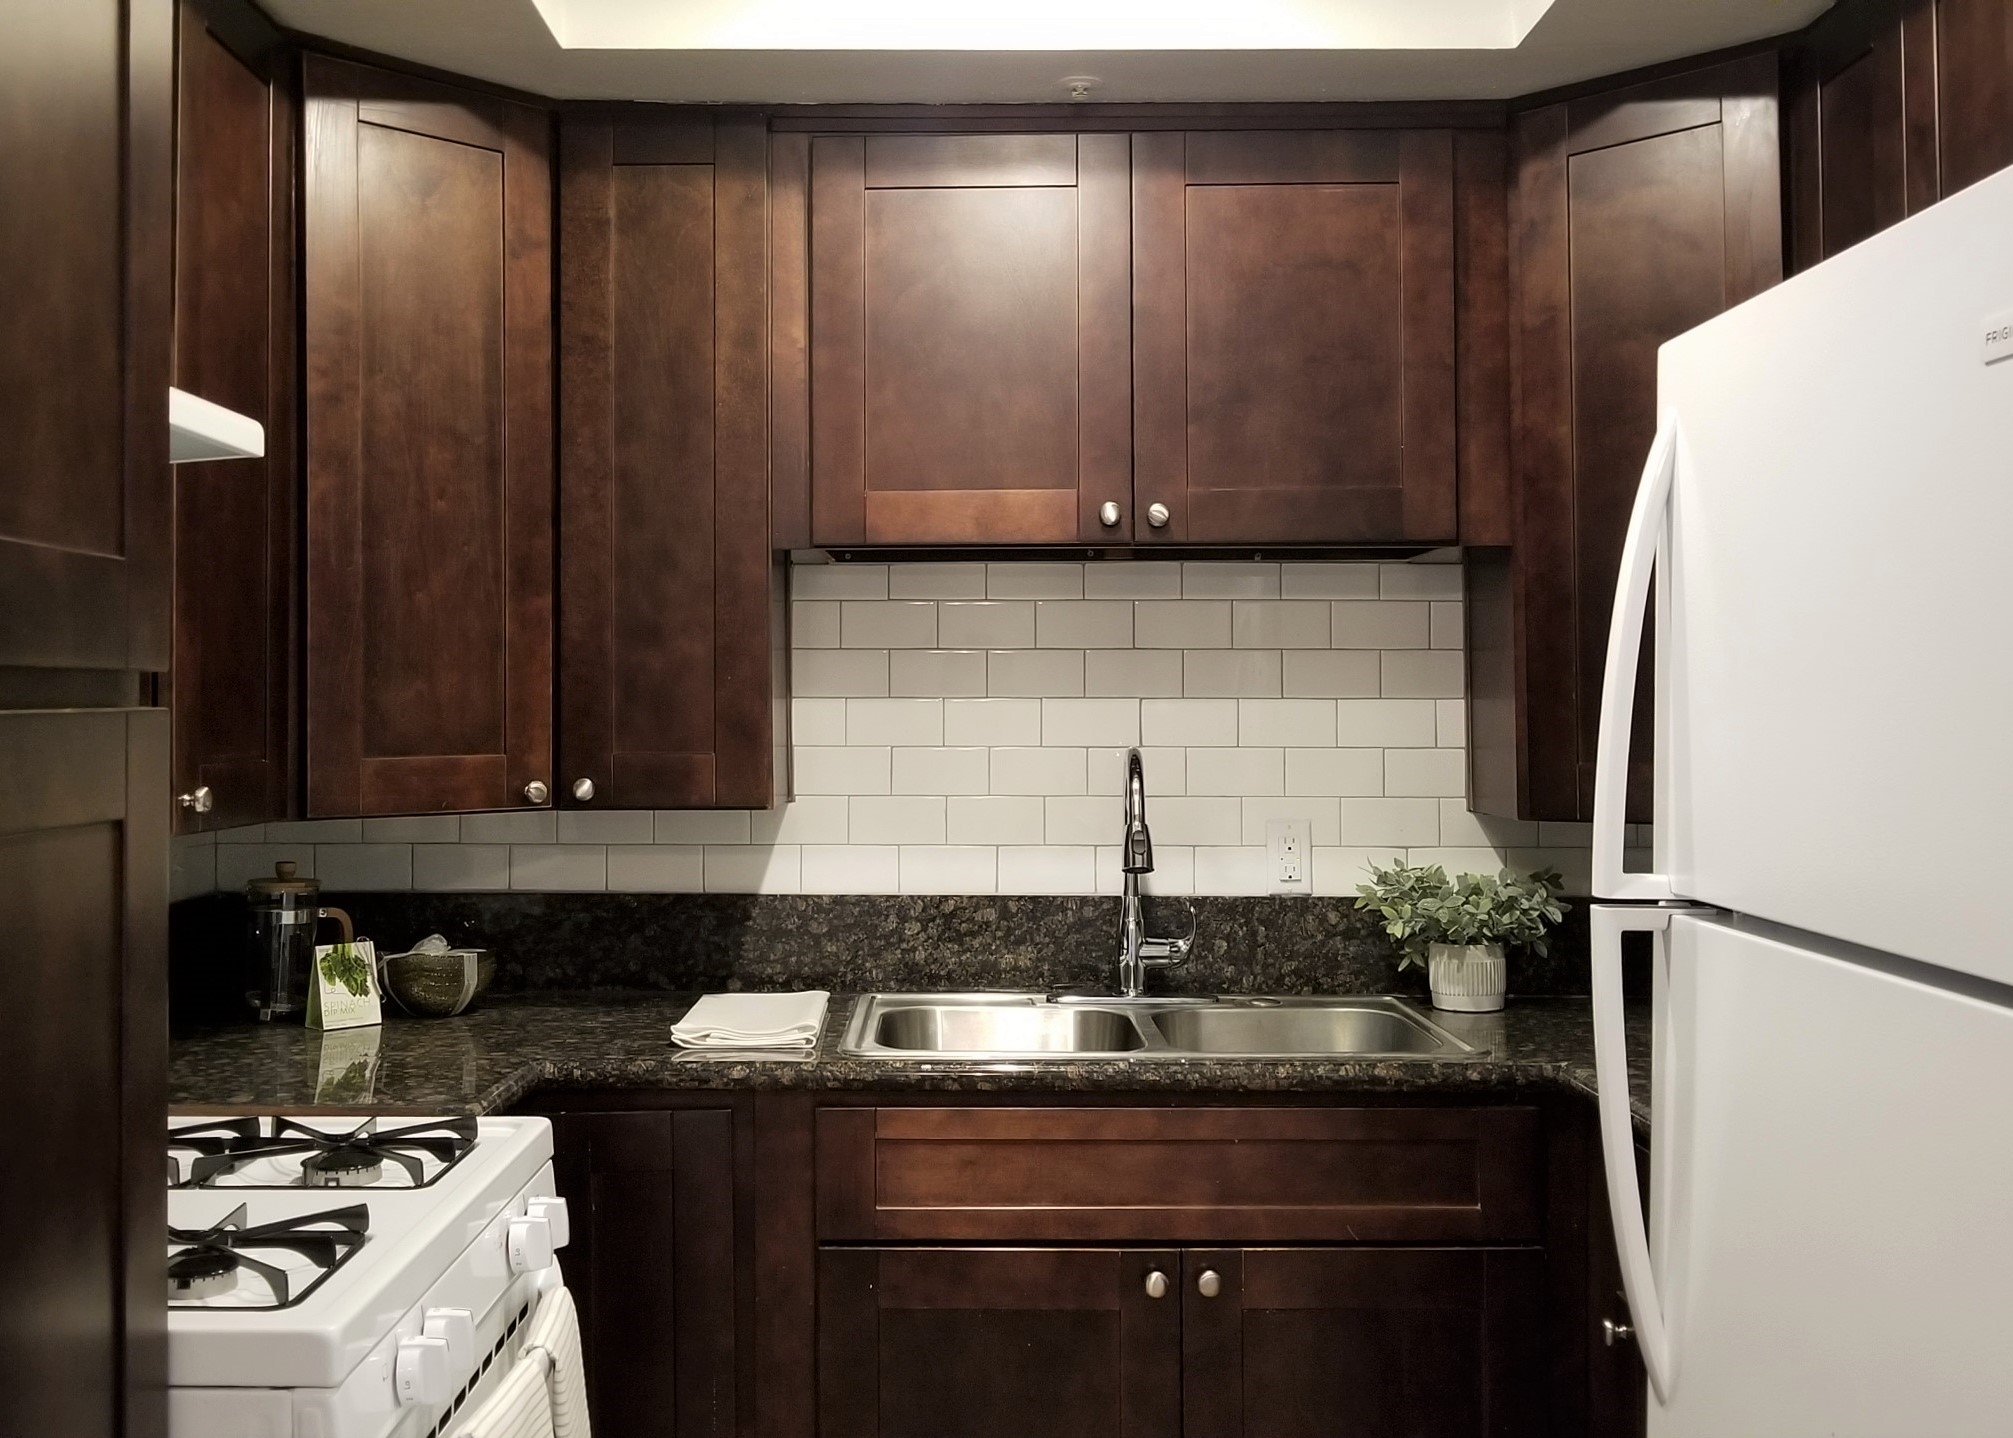 Kitchen cabinetry, stove, granite counter top, and refrigerator